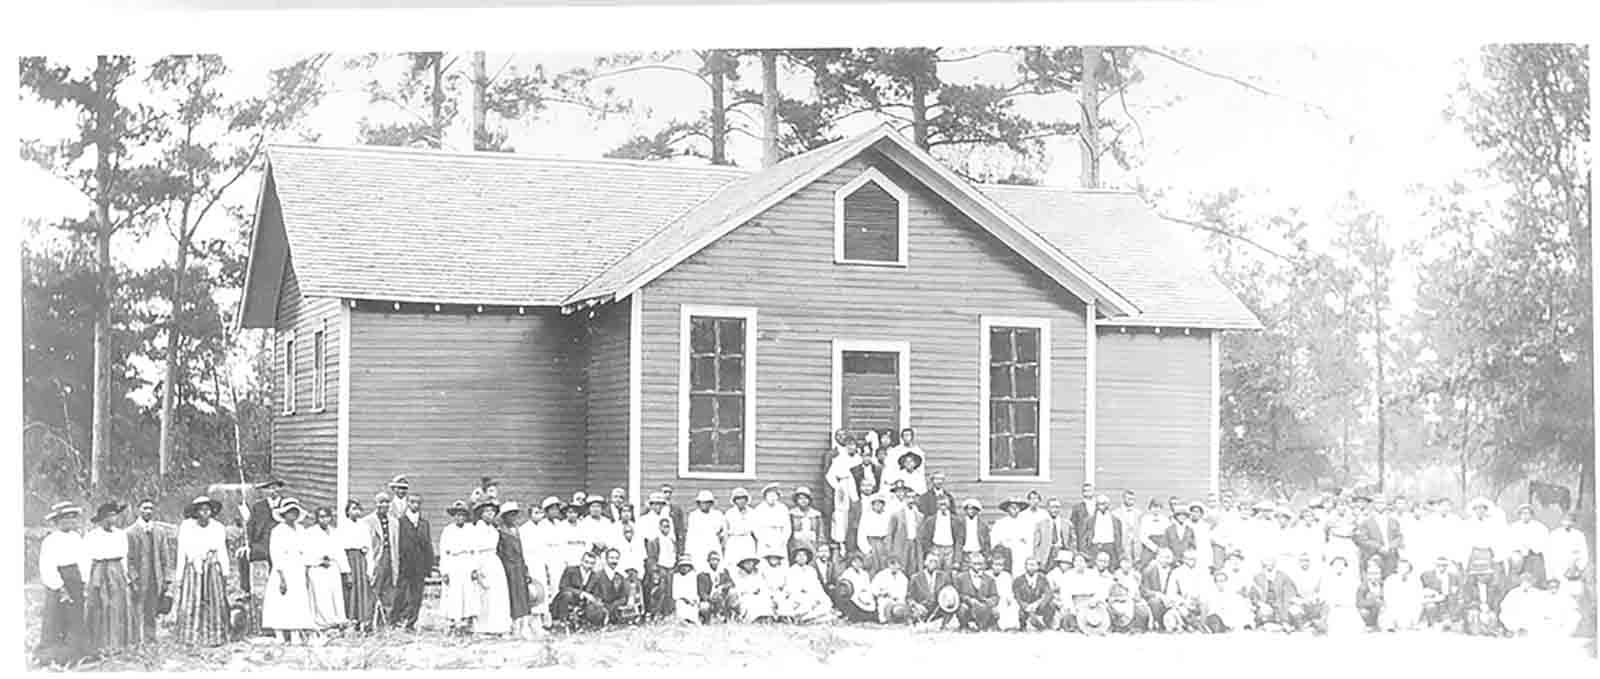 A Rosenwald School in Alabama, circa 1920